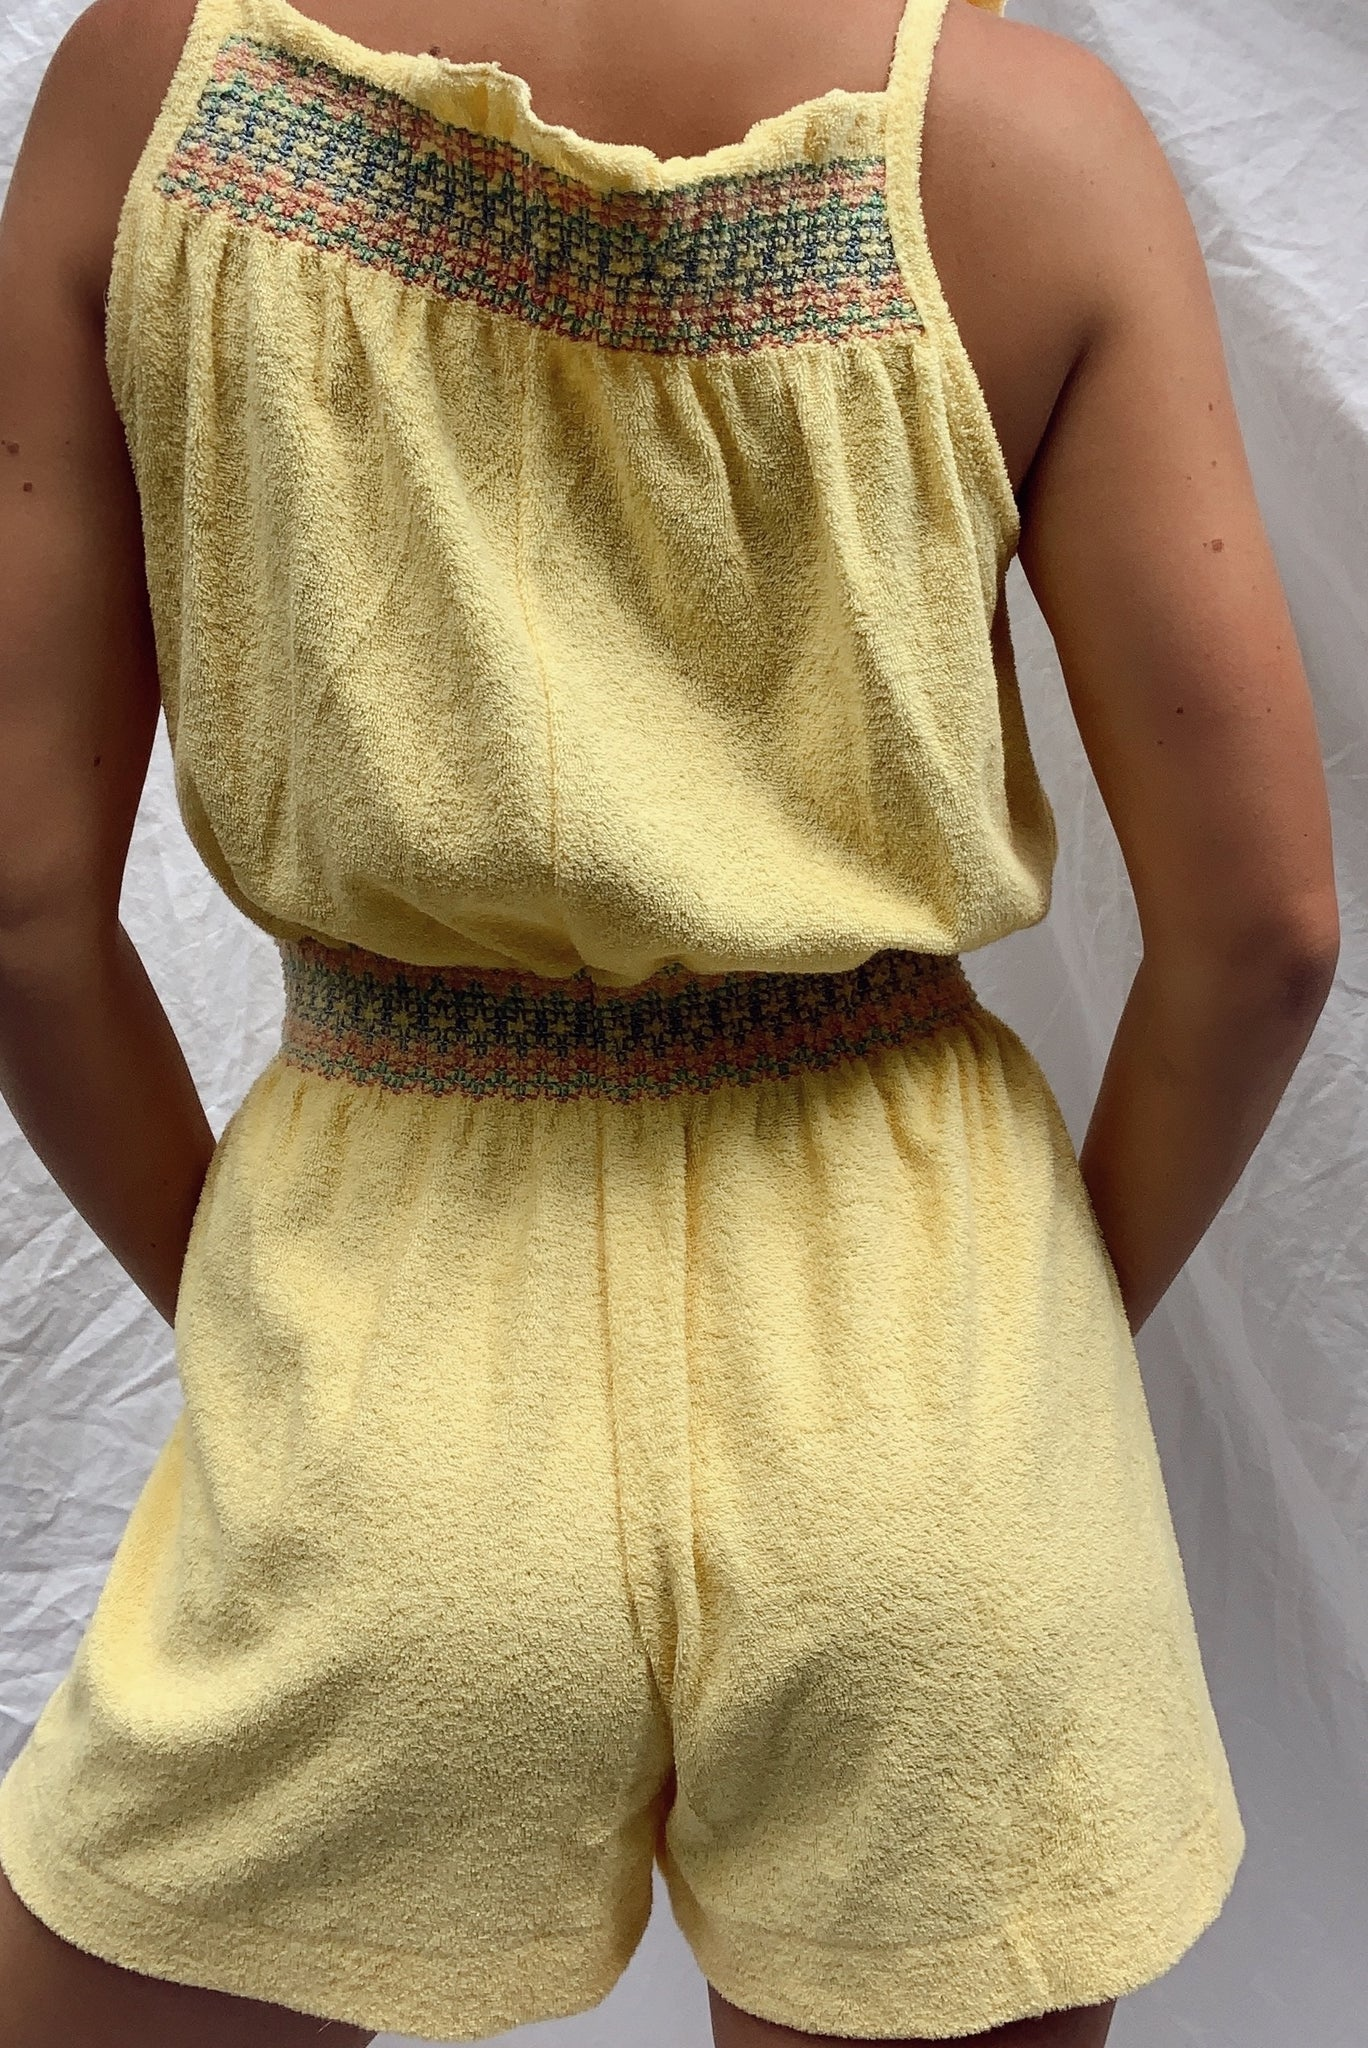 70's Terry Cloth Romper (S-M)